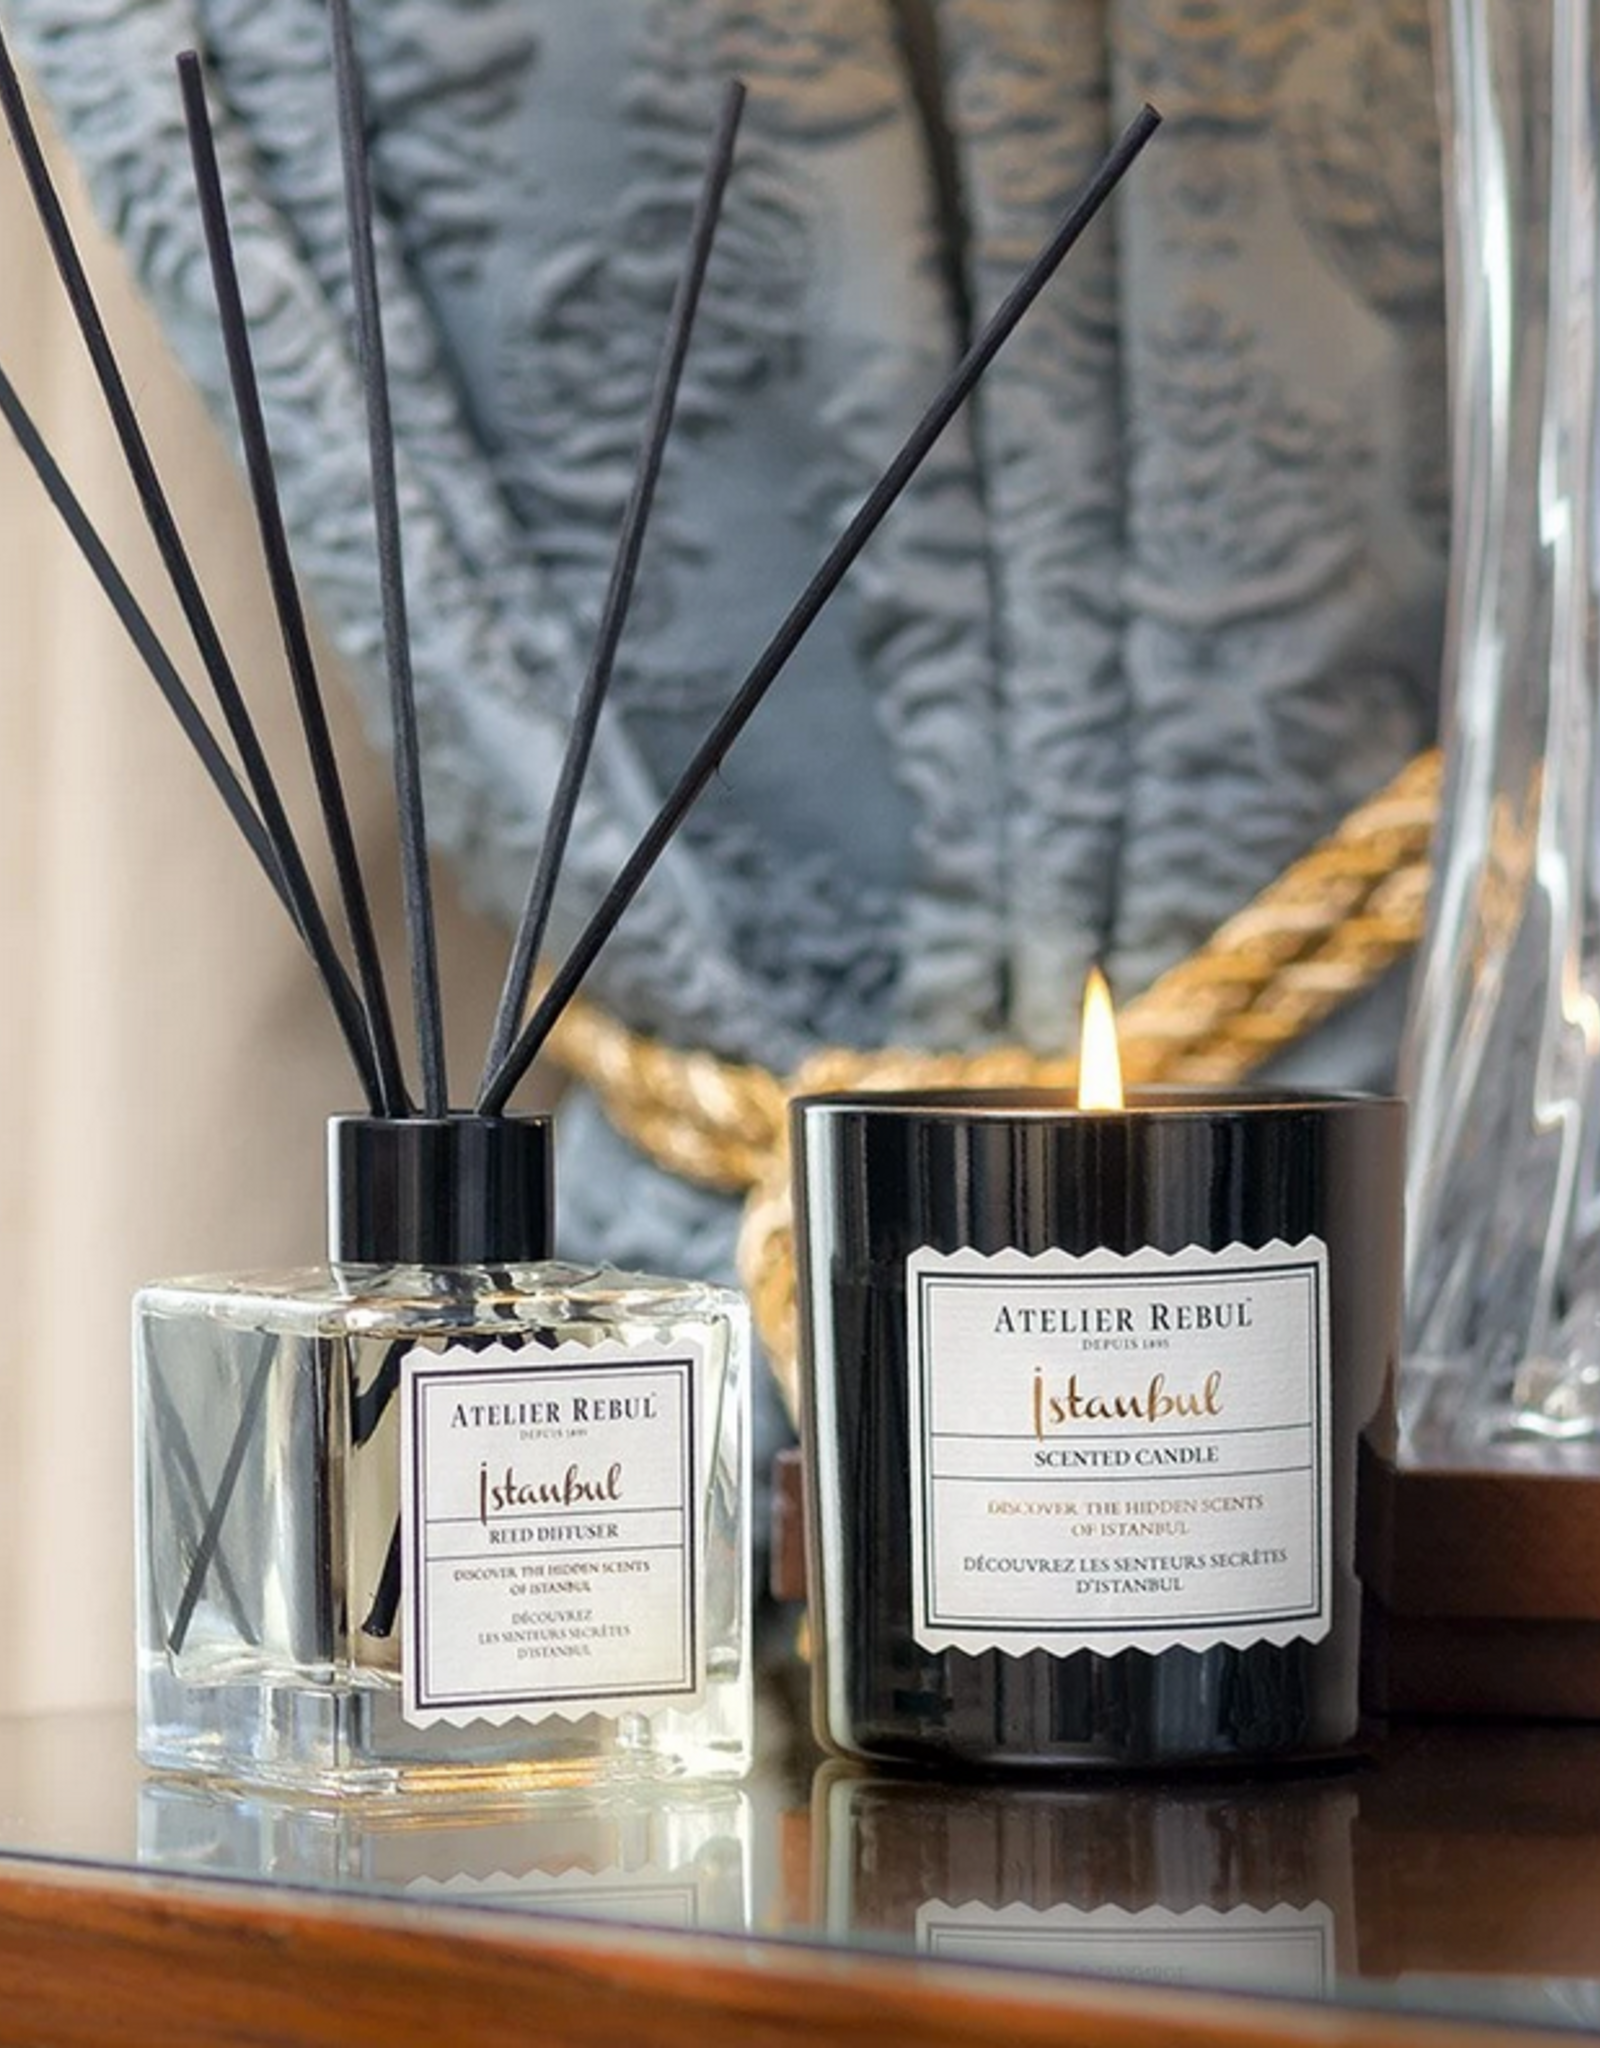 Atelier Rebul Atelier Rebul - Istanbul - Scented Candle - 210gr - New Formula